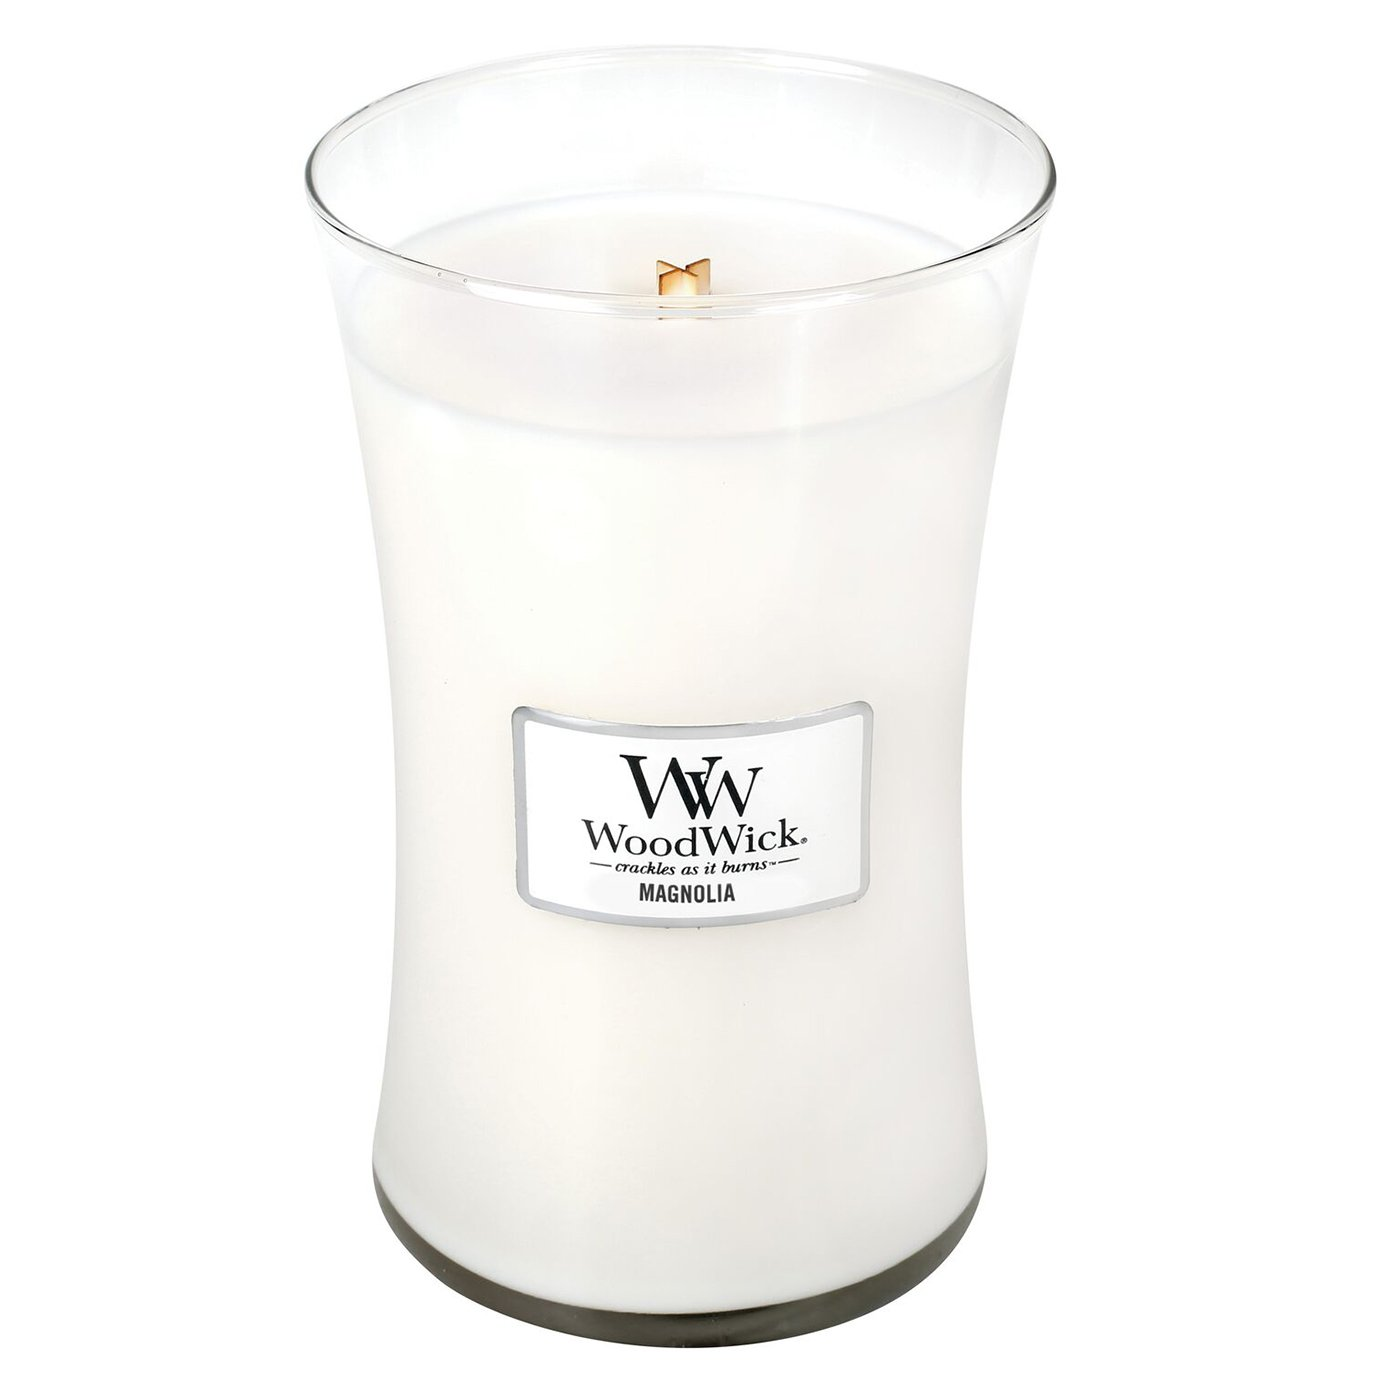 Large 7-inch 21.5 oz Classic Hourglass Jar WoodWick MAGNOLIA Highly Scented Candle